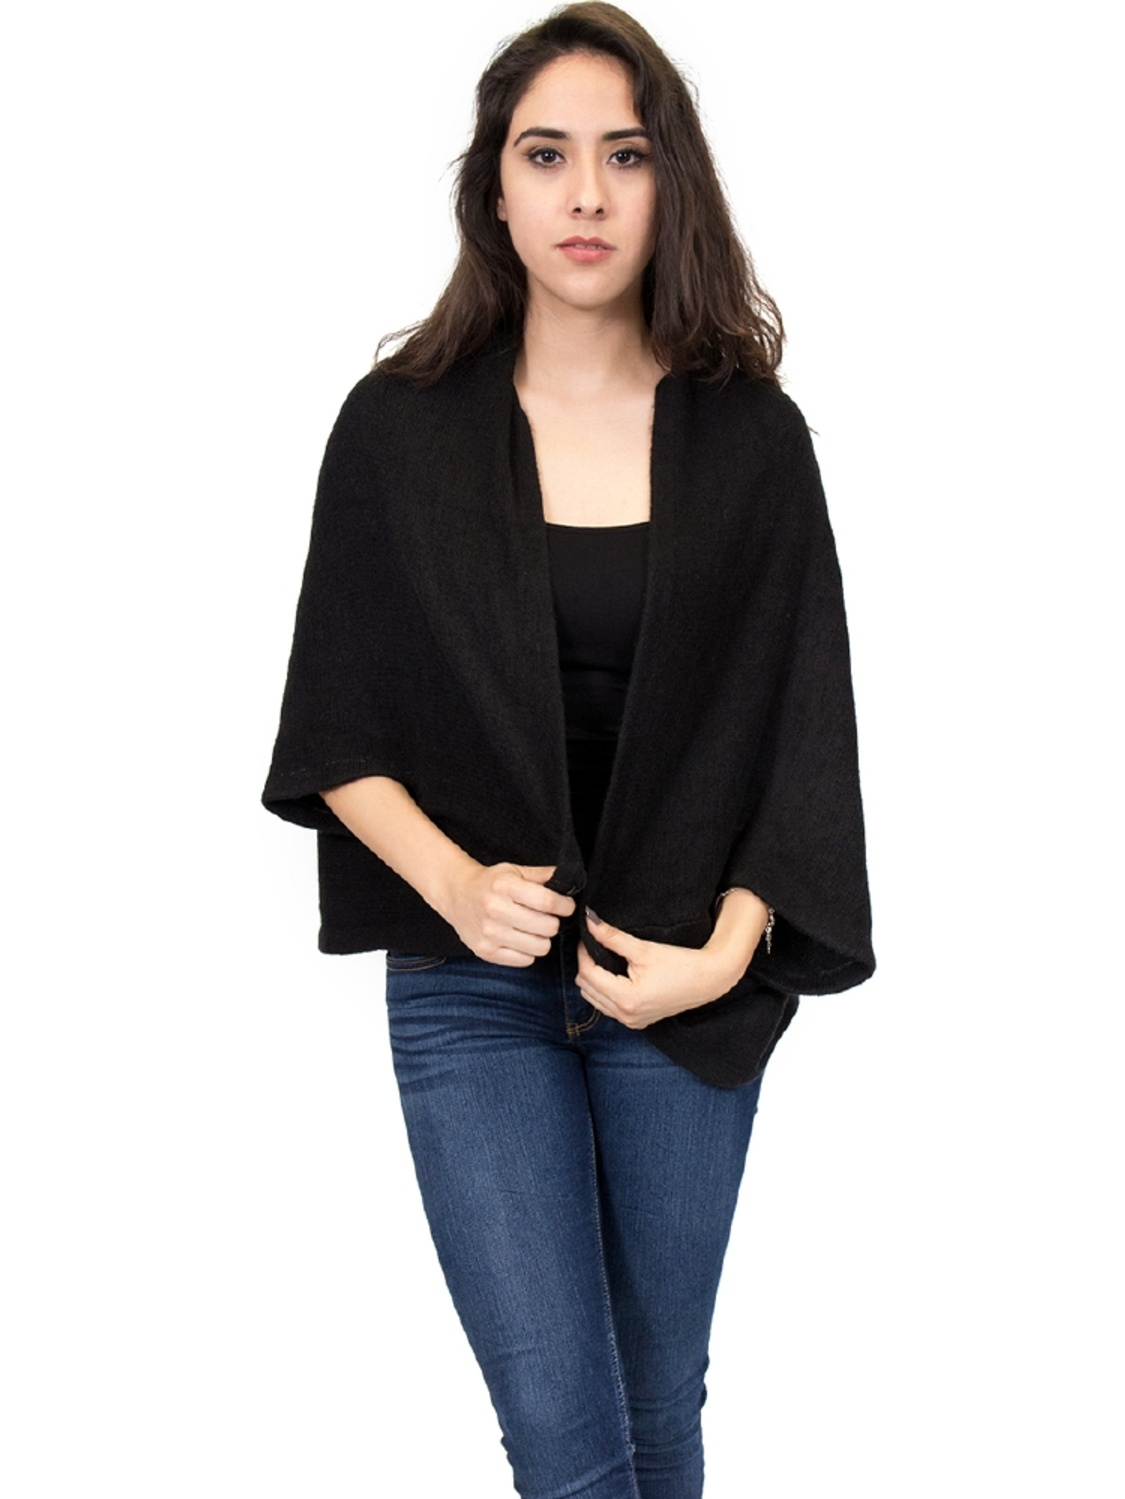 Zodaca Fashion Women Ladies Casual Oversized Knitted Sleeve Cardigan to Hip Length Poncho for Women Black by Overstock